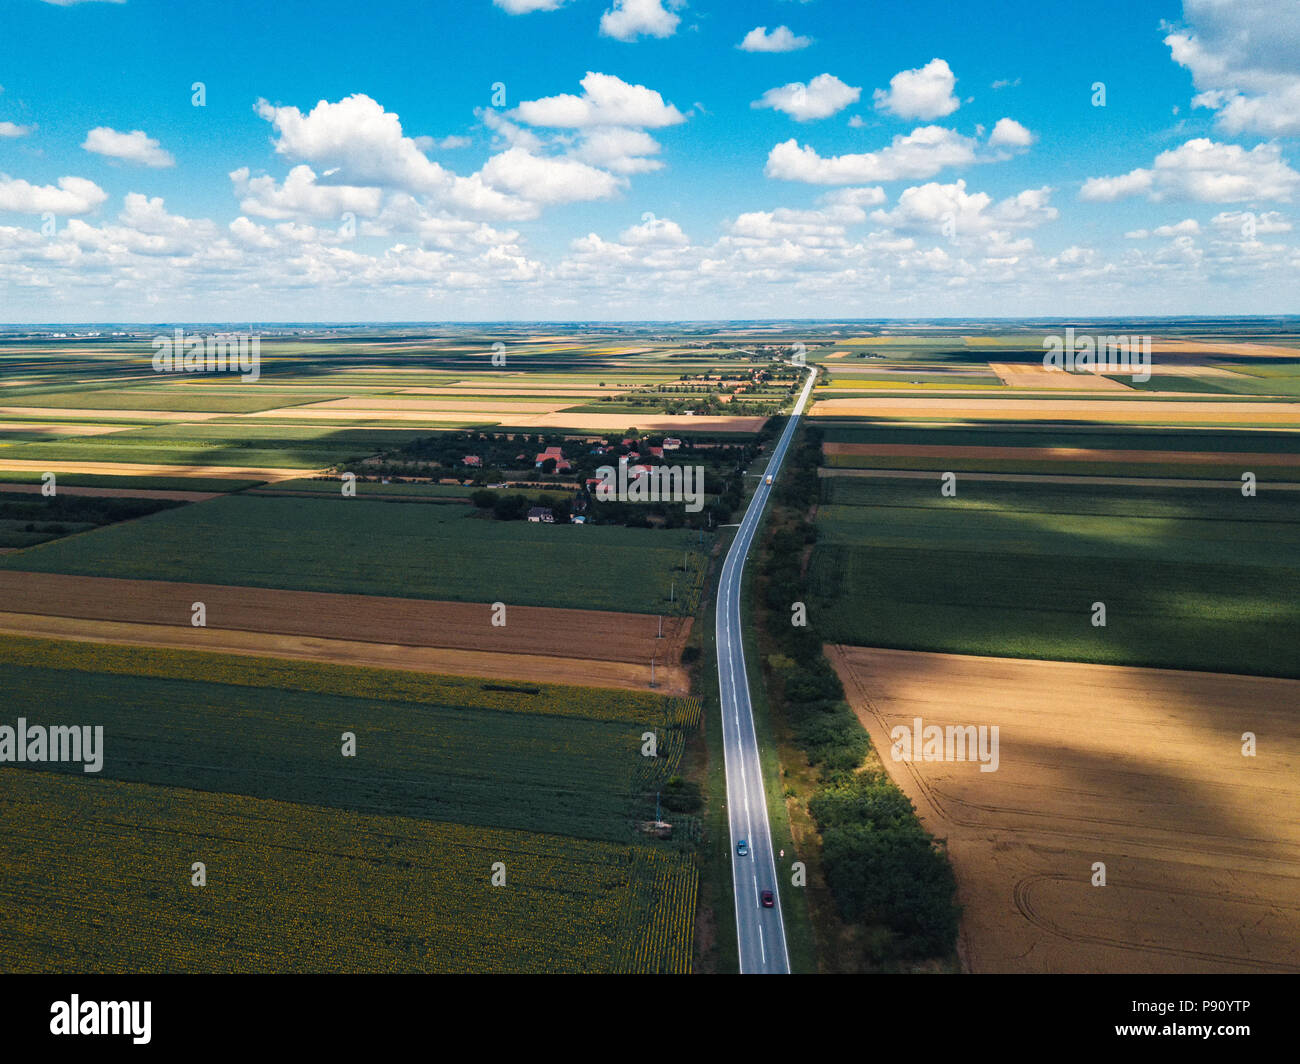 Aerial view of road through countryside landscape on sunny summer day - Stock Image